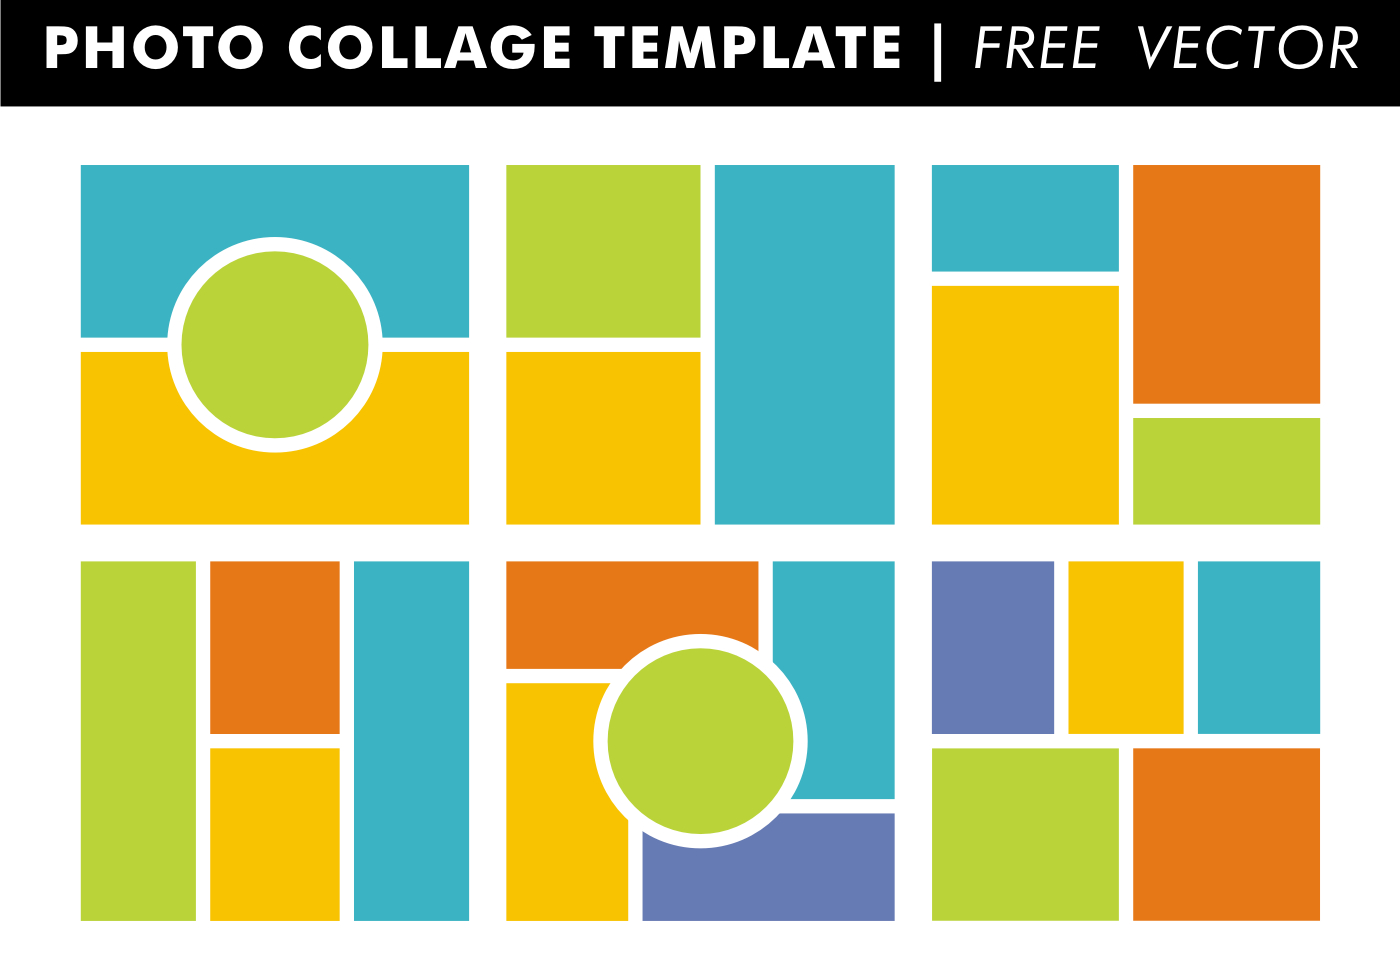 020 Blogcollagessample Free Photo Collage Templates Template - Free Printable Photo Collage Template